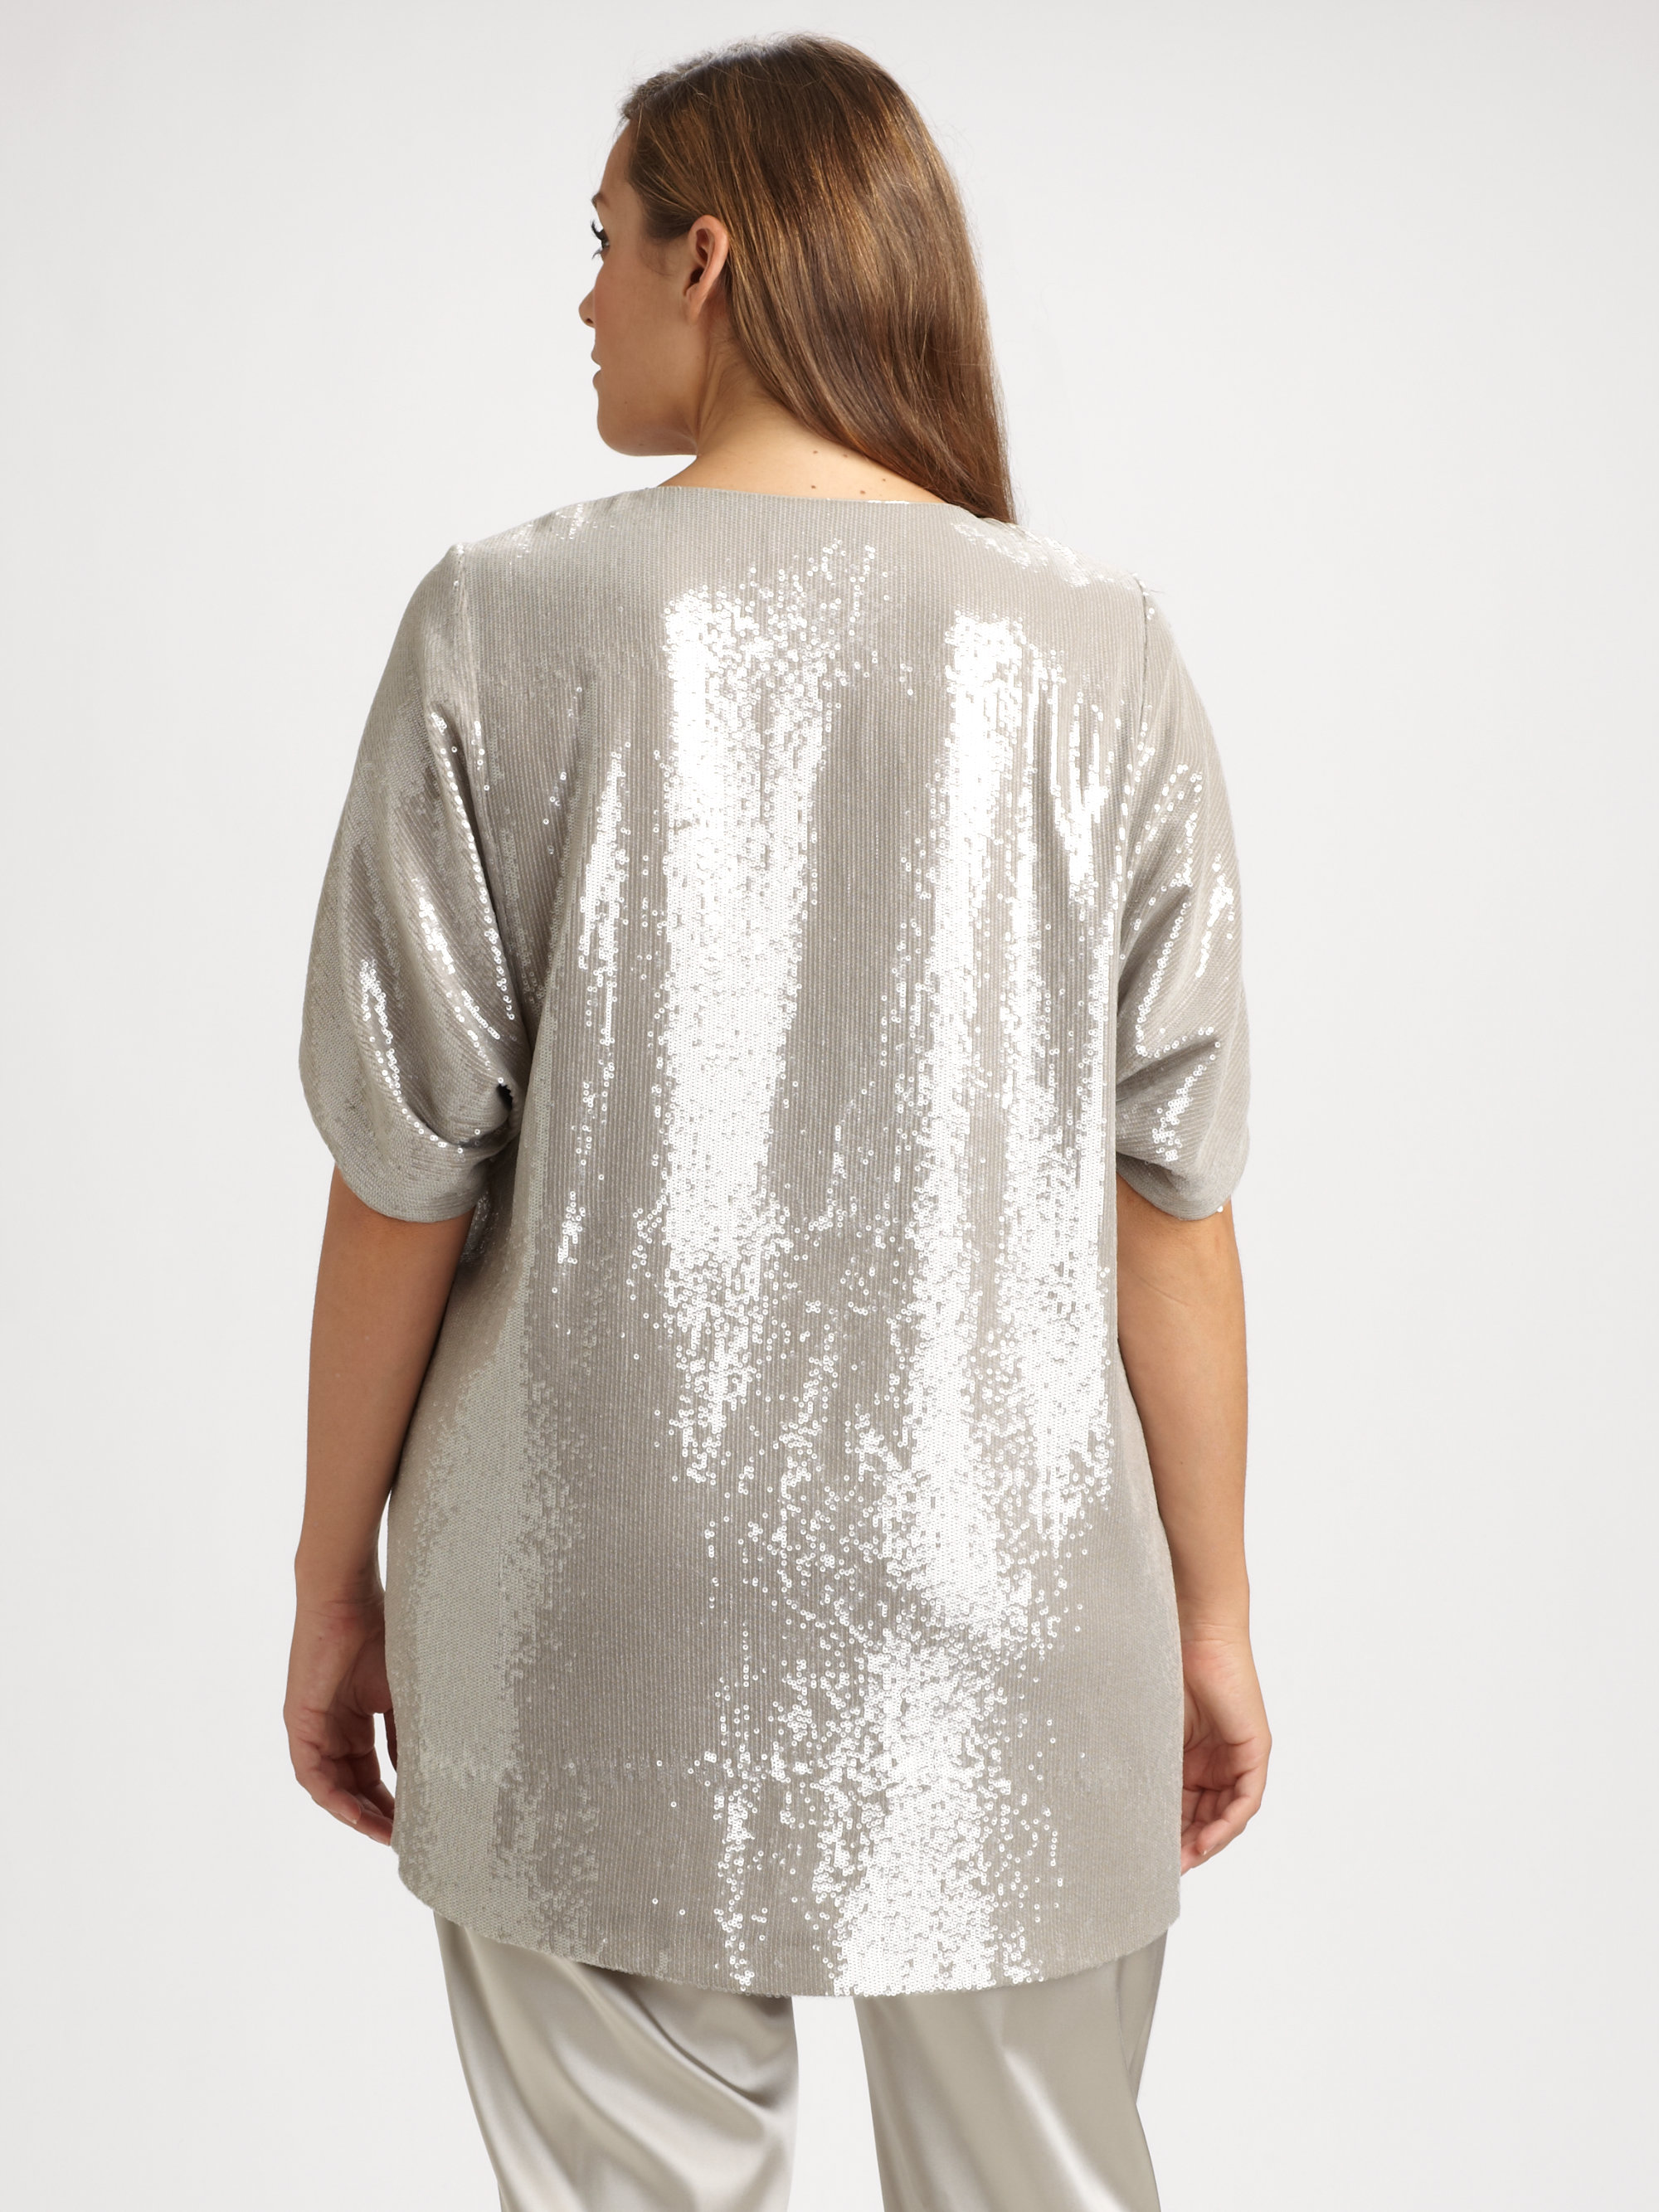 148 Best Images About Craft Ideas For Girls On Pinterest: Lafayette 148 New York Sequin Shanaya Top In Silver